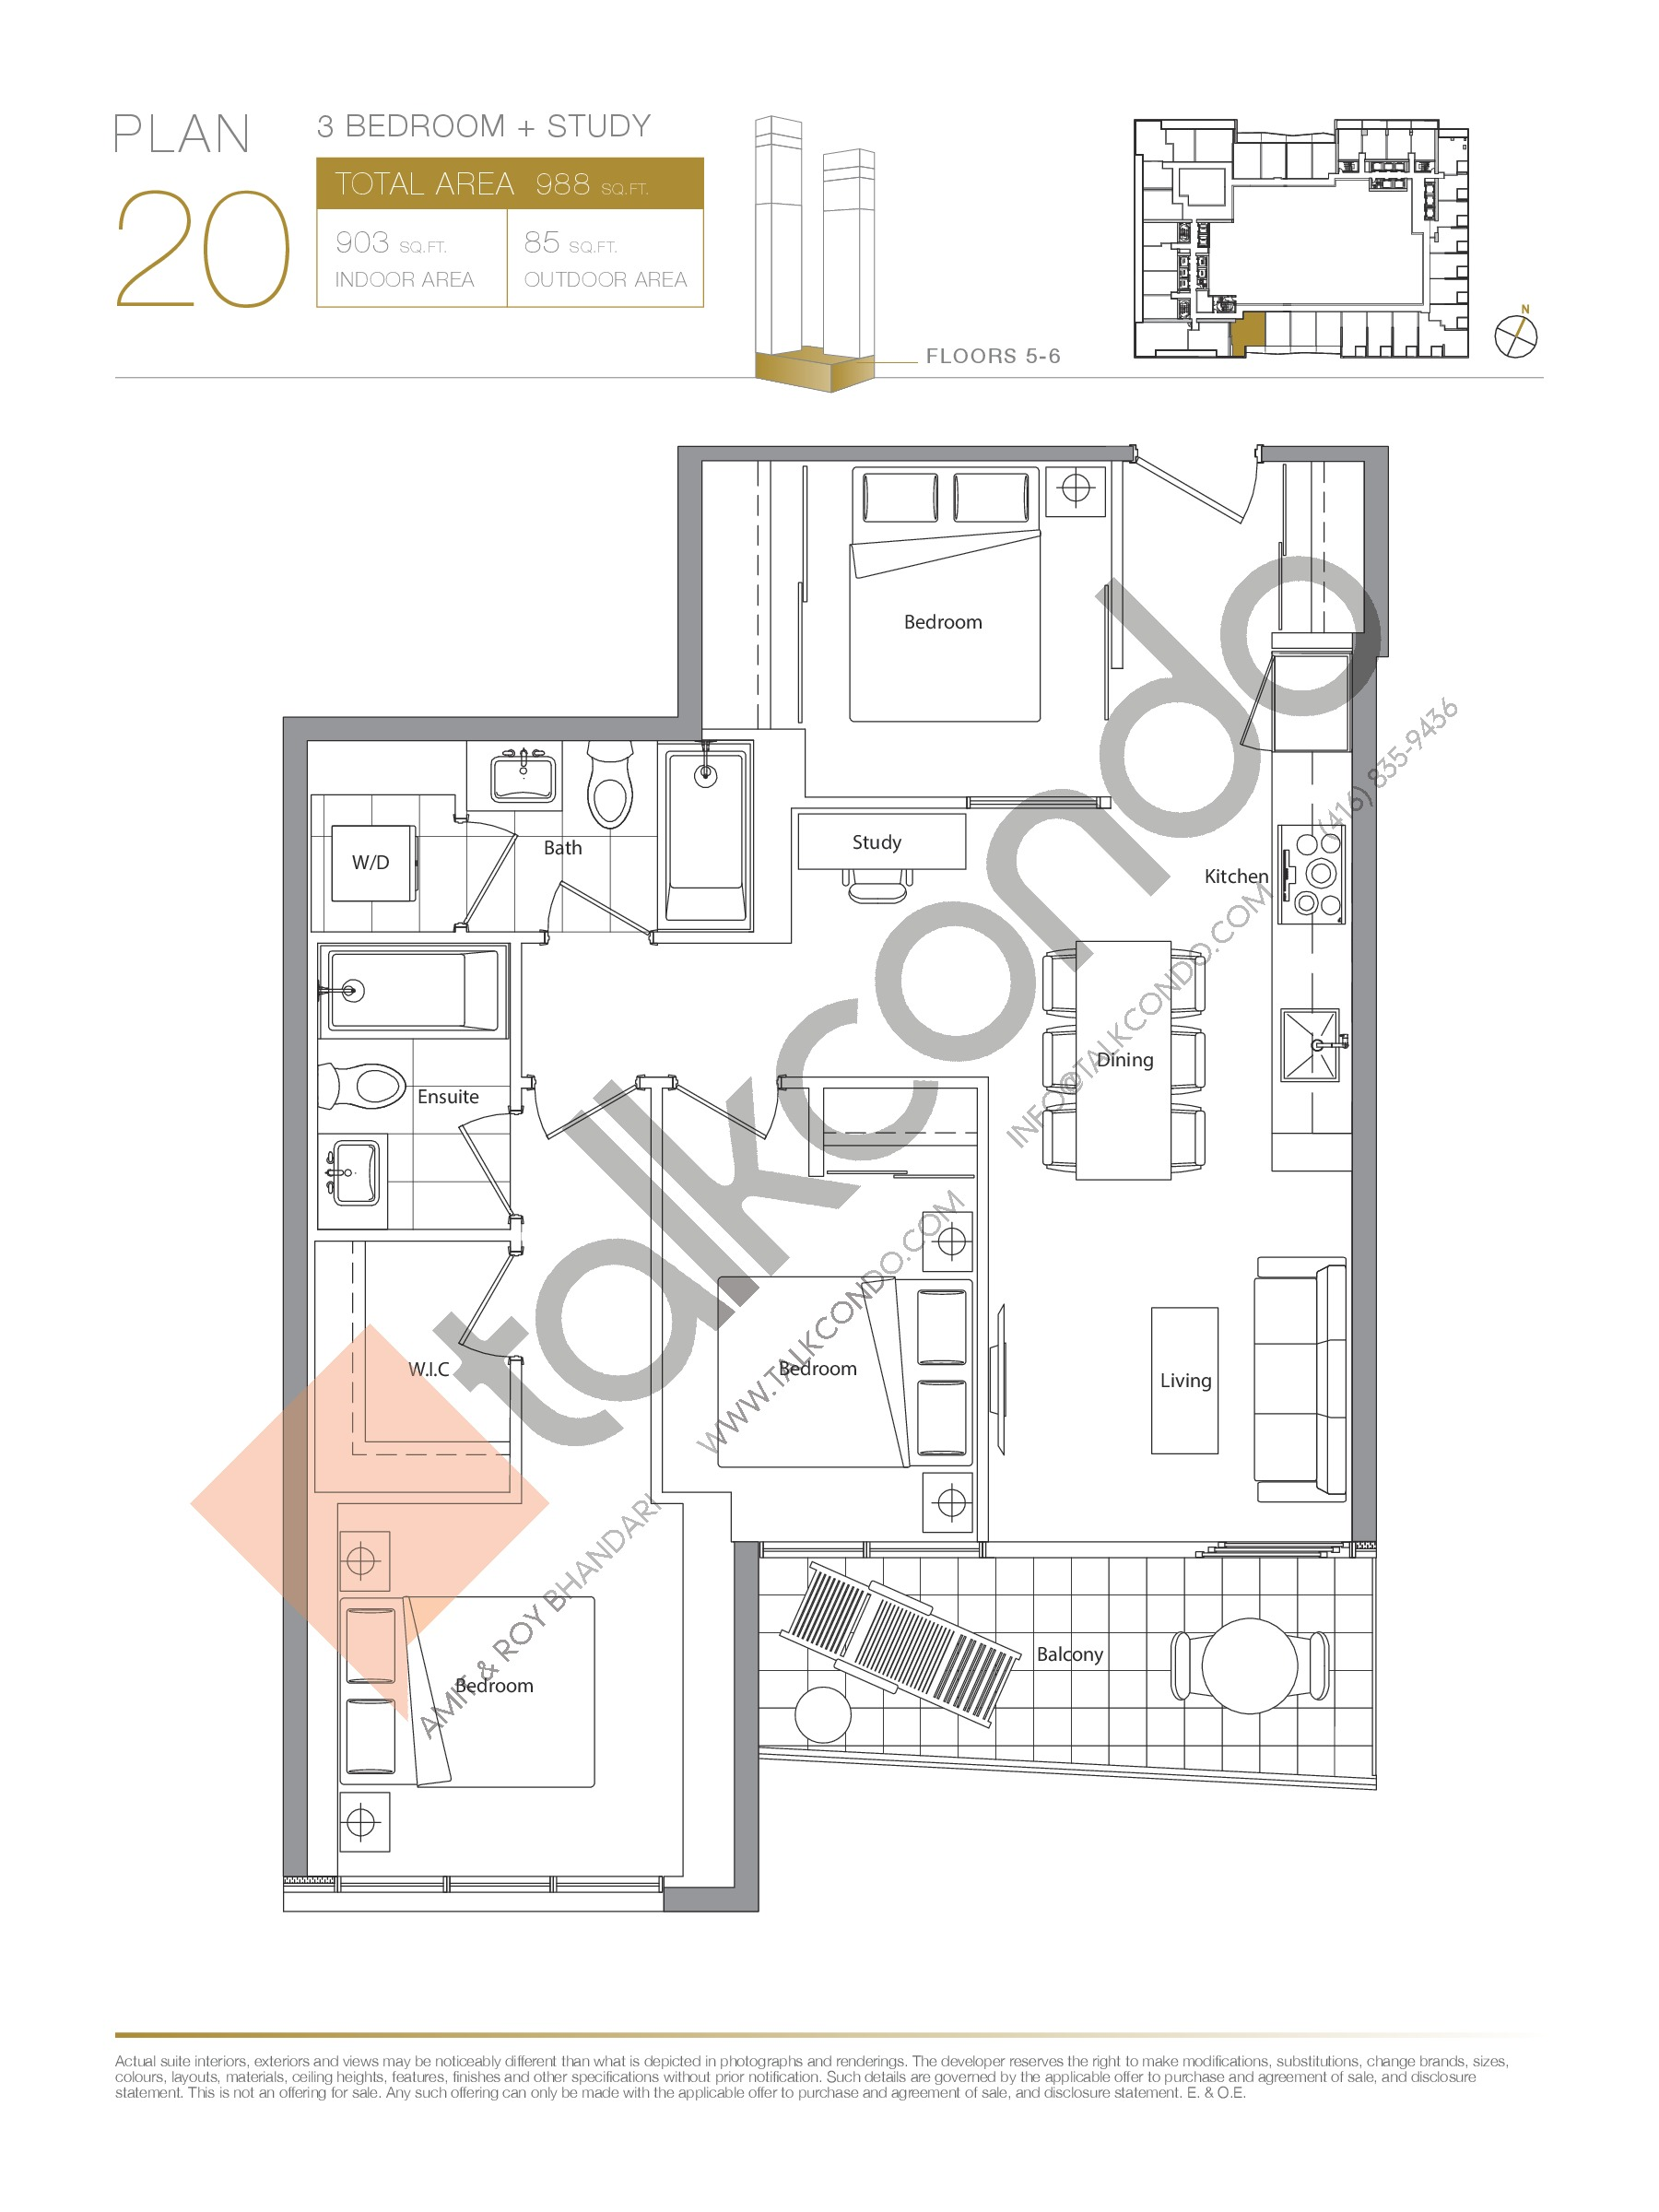 Plan 20 - Podium Floor Plan at Concord Canada House Condos - 903 sq.ft